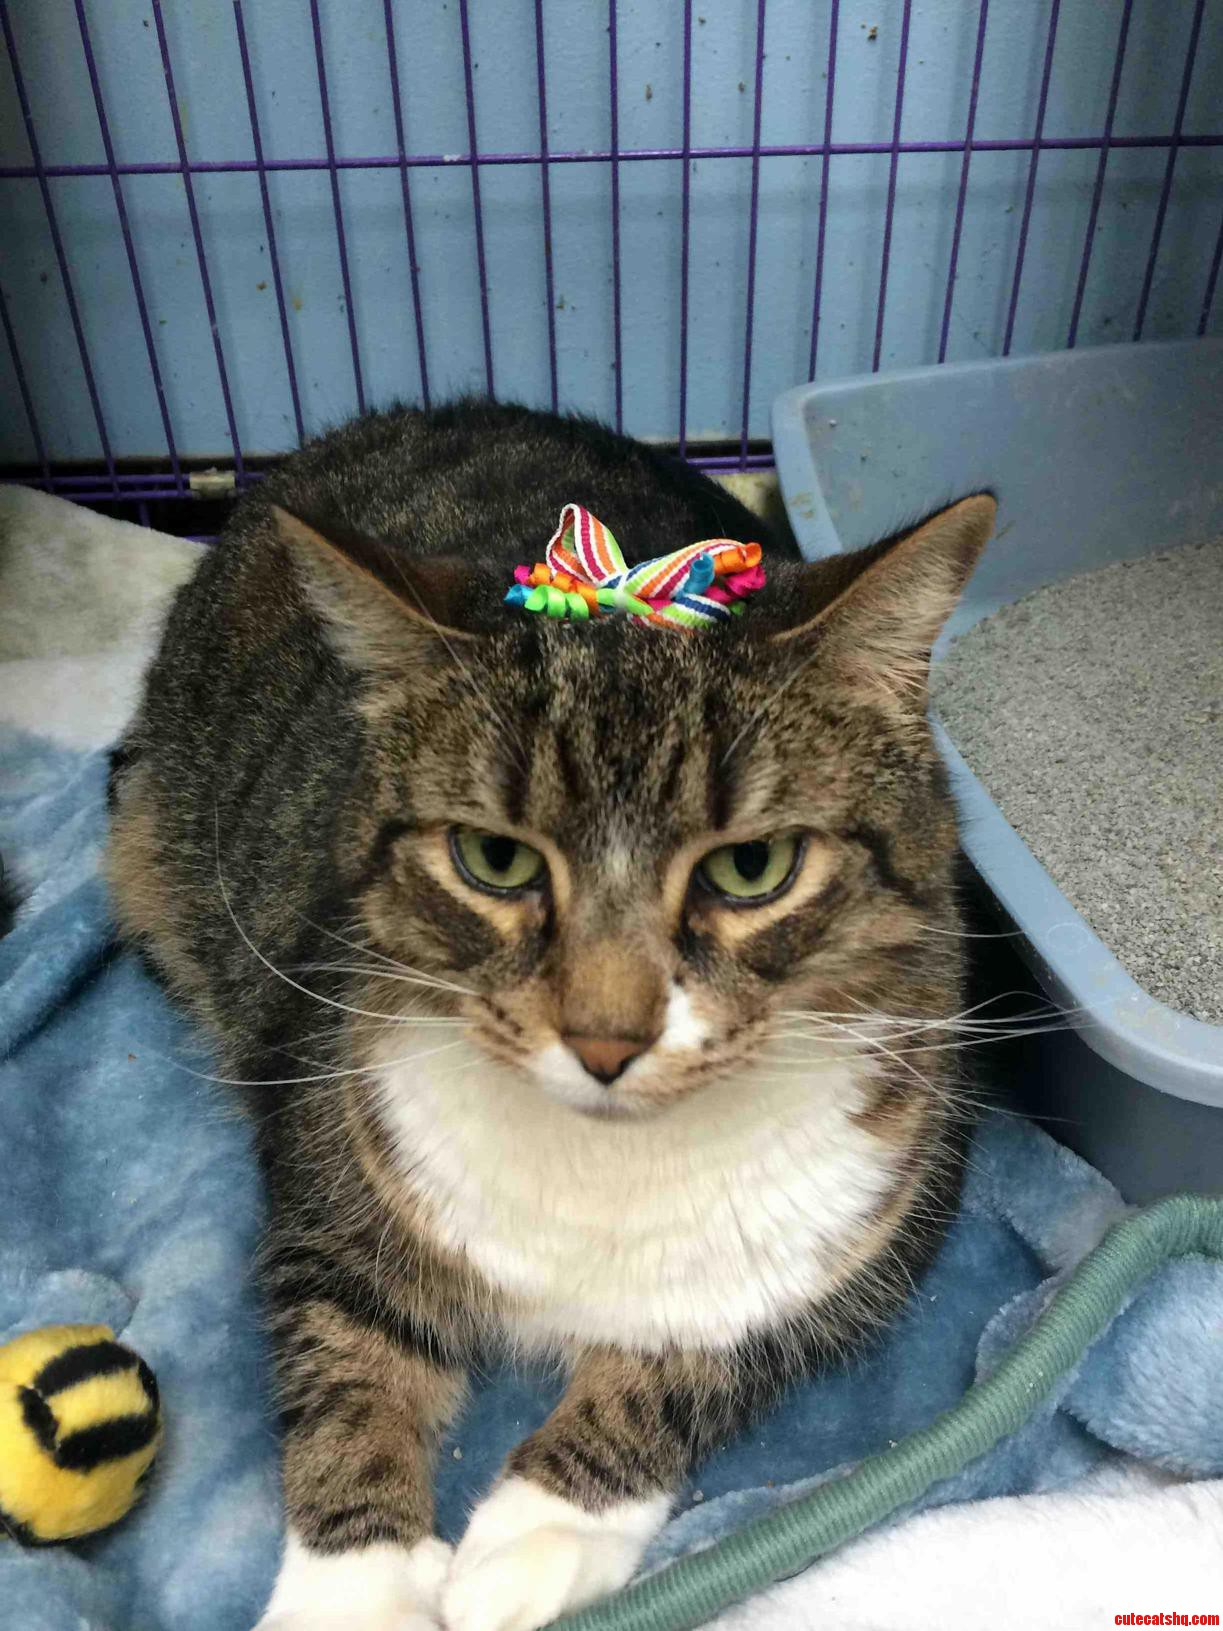 This Cat Does Not Approve Of The Bow In His Hair.